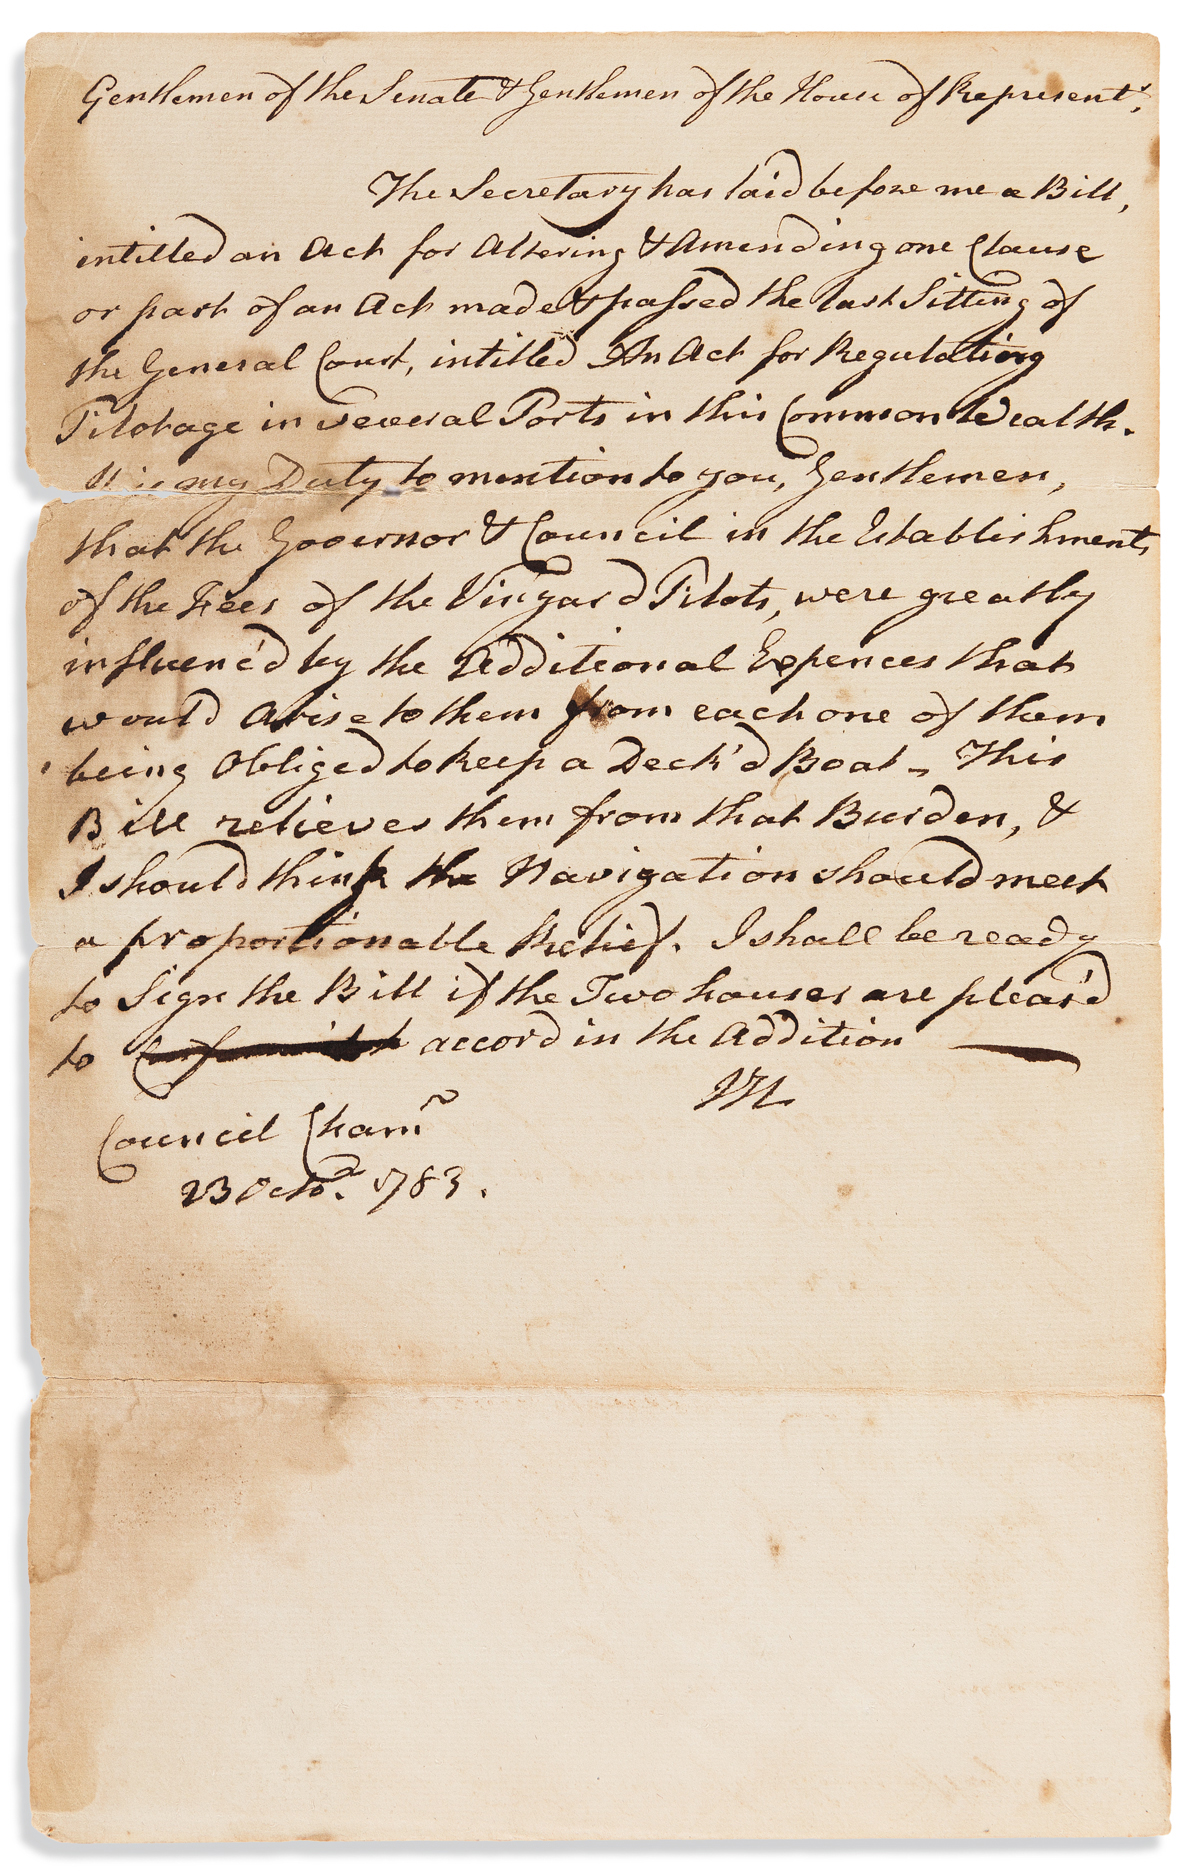 HANCOCK, JOHN. Autograph Letter Signed, JH, as Governor of Massachusetts, to the MA General Court